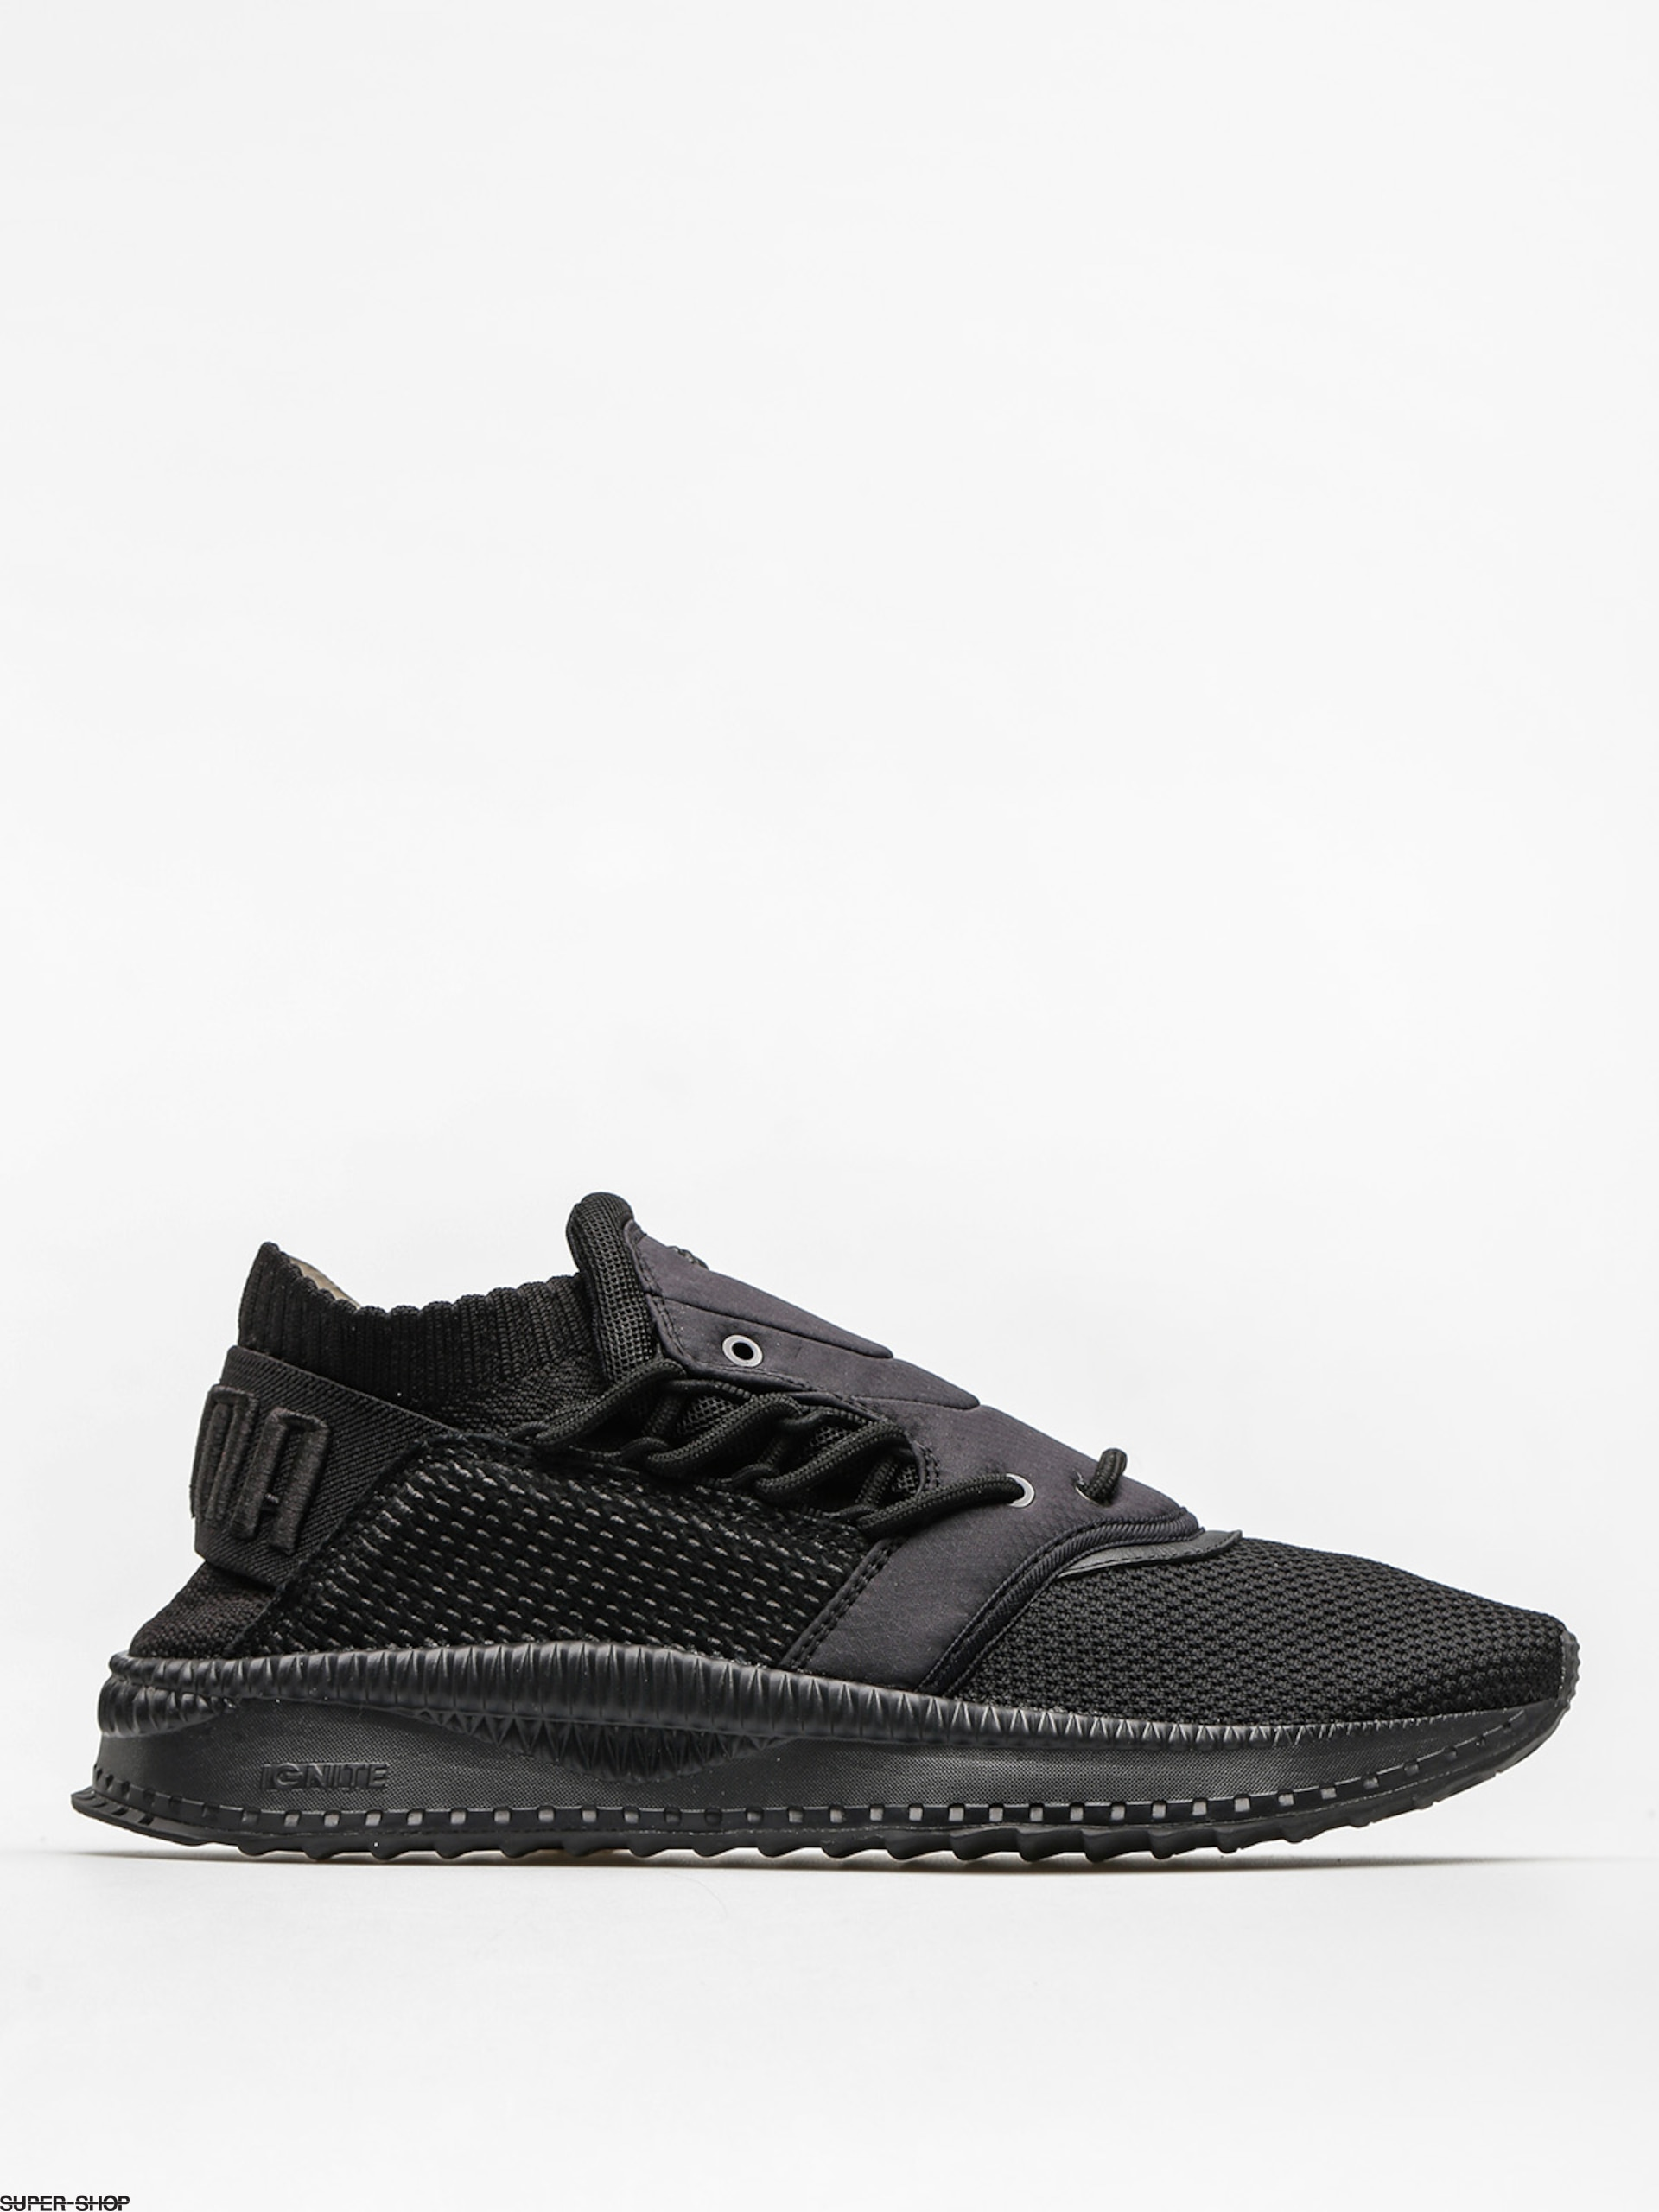 Puma Shoes Tsugi Shinsei Raw